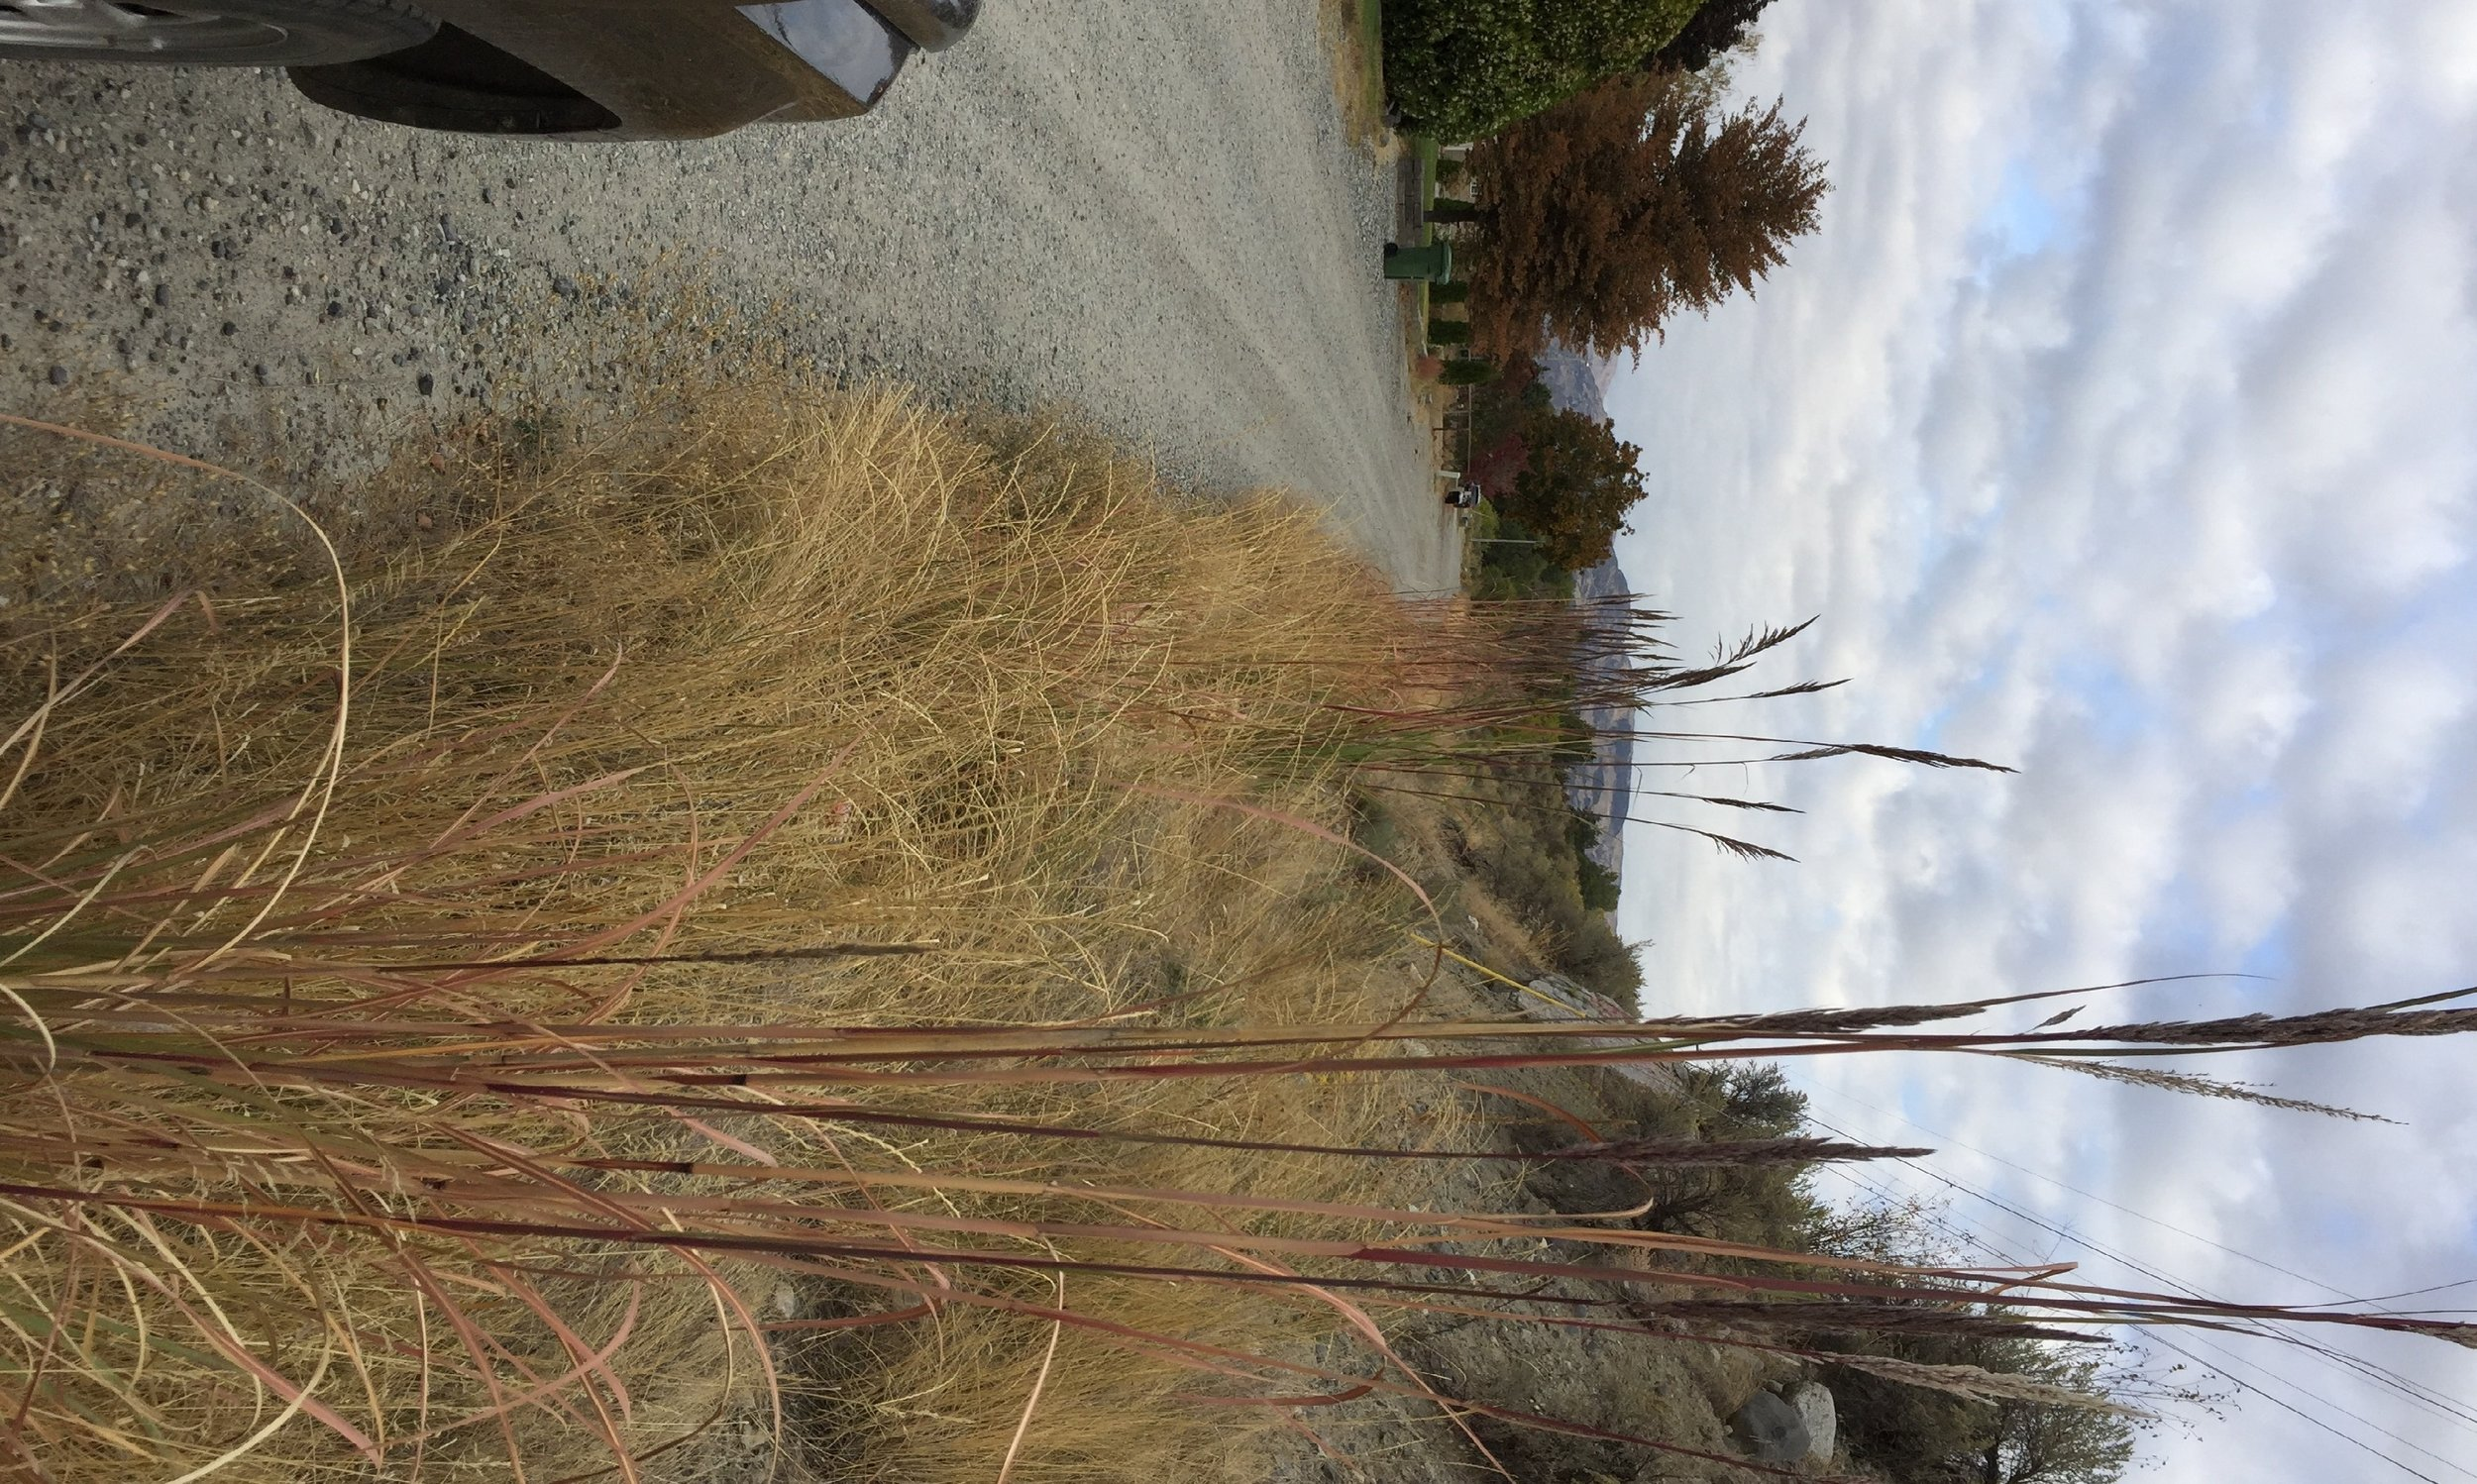 Ravenna grass is generally planted as an ornamental, but will often times escaped these ornamental plantings. The plants in this picture escaped someones yard and were found growing along a dry roadside.